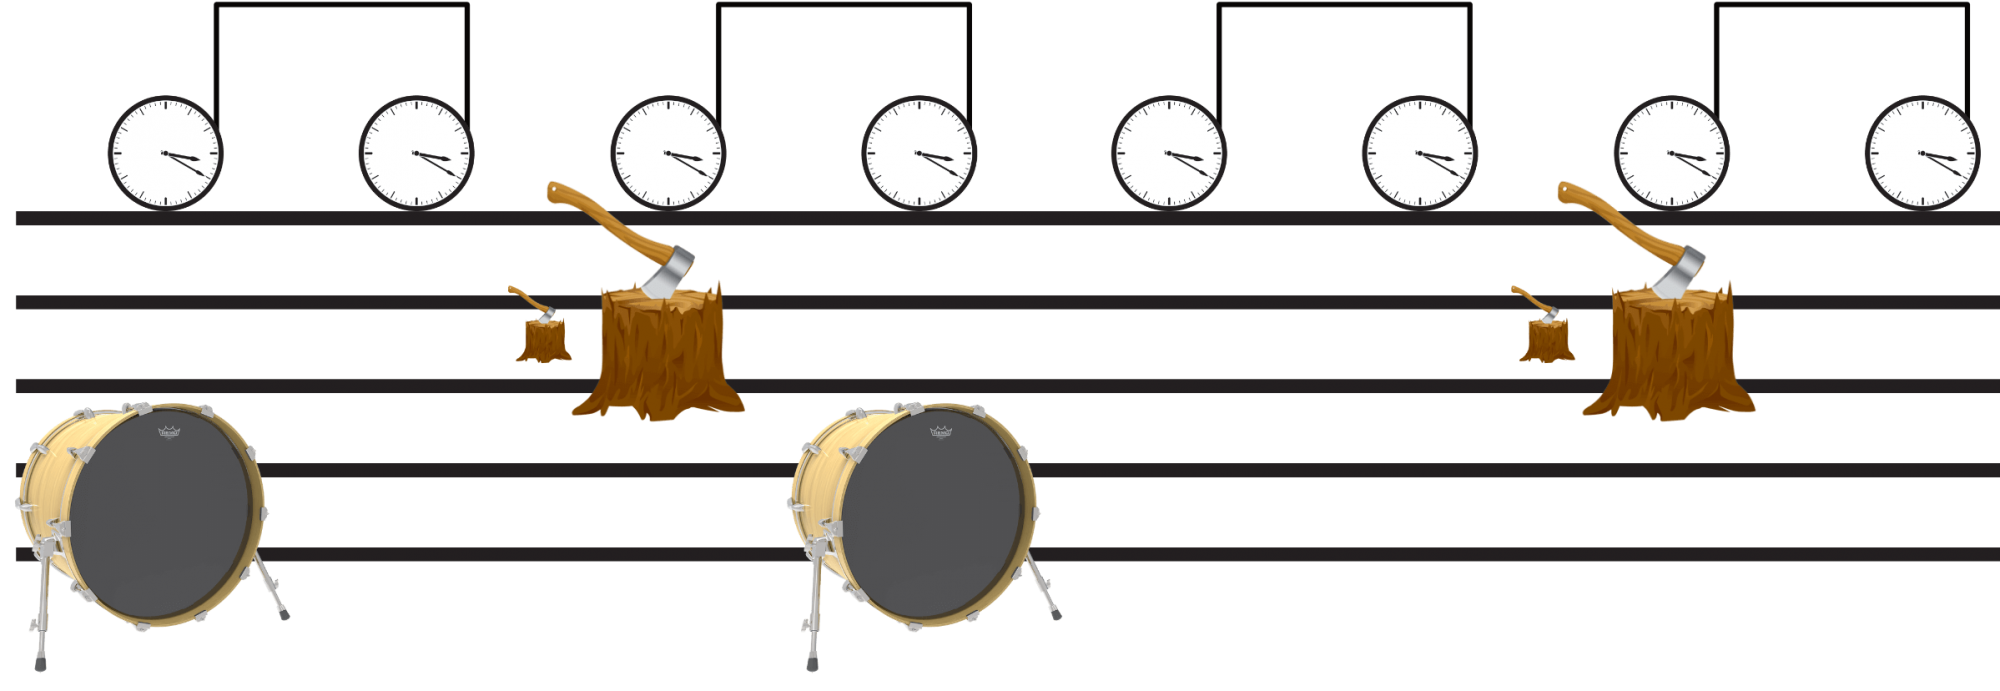 2._middle_drums.png